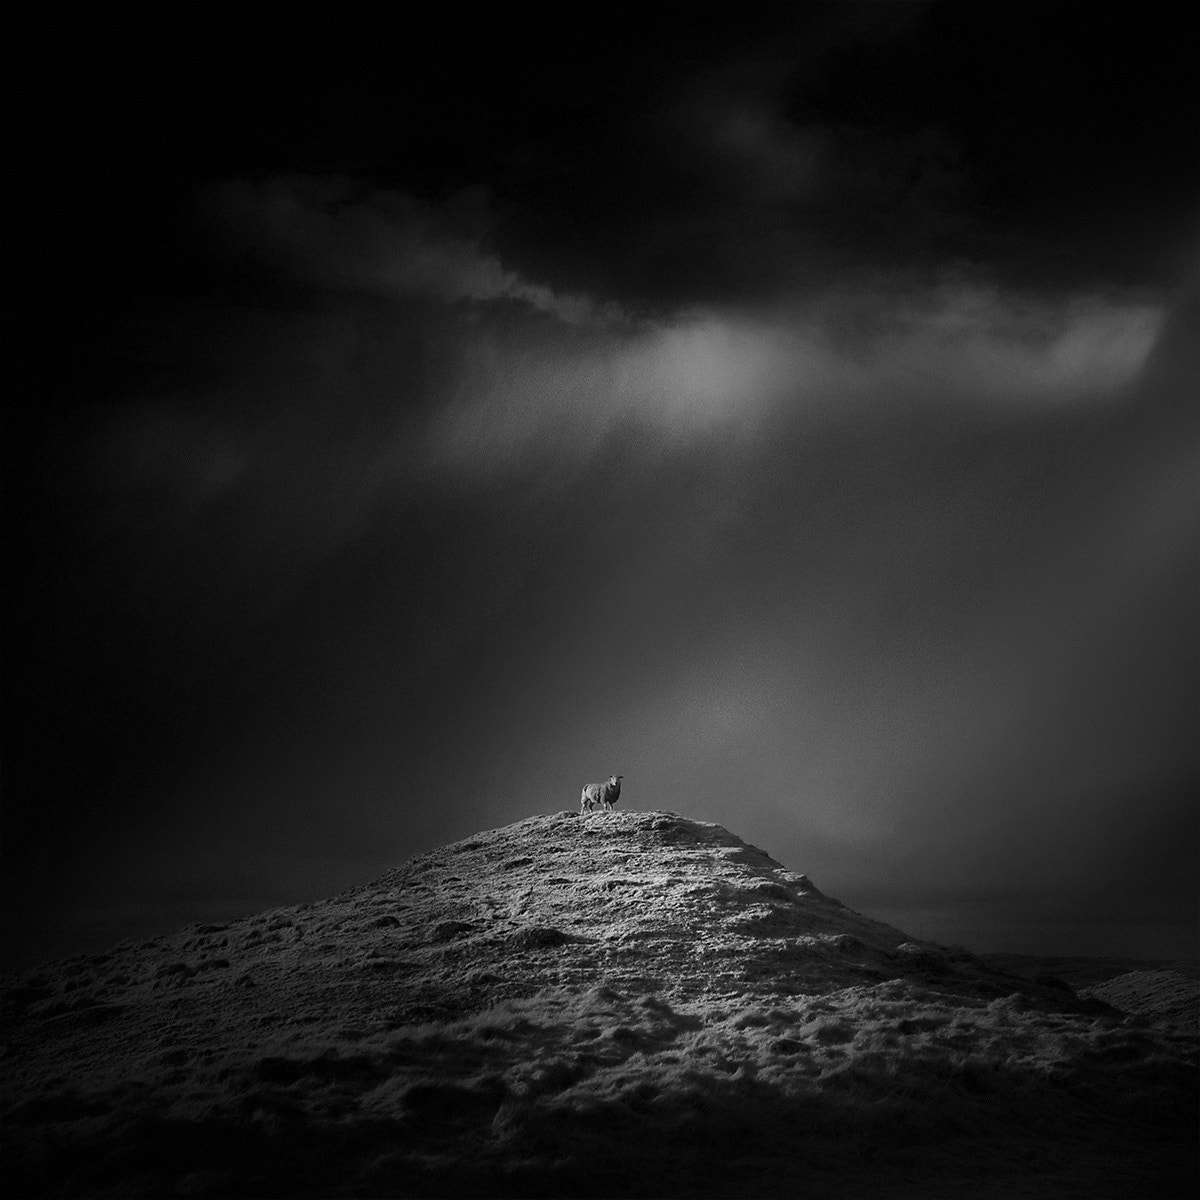 Photograph ewe and i on top of the world by Andy Lee on 500px